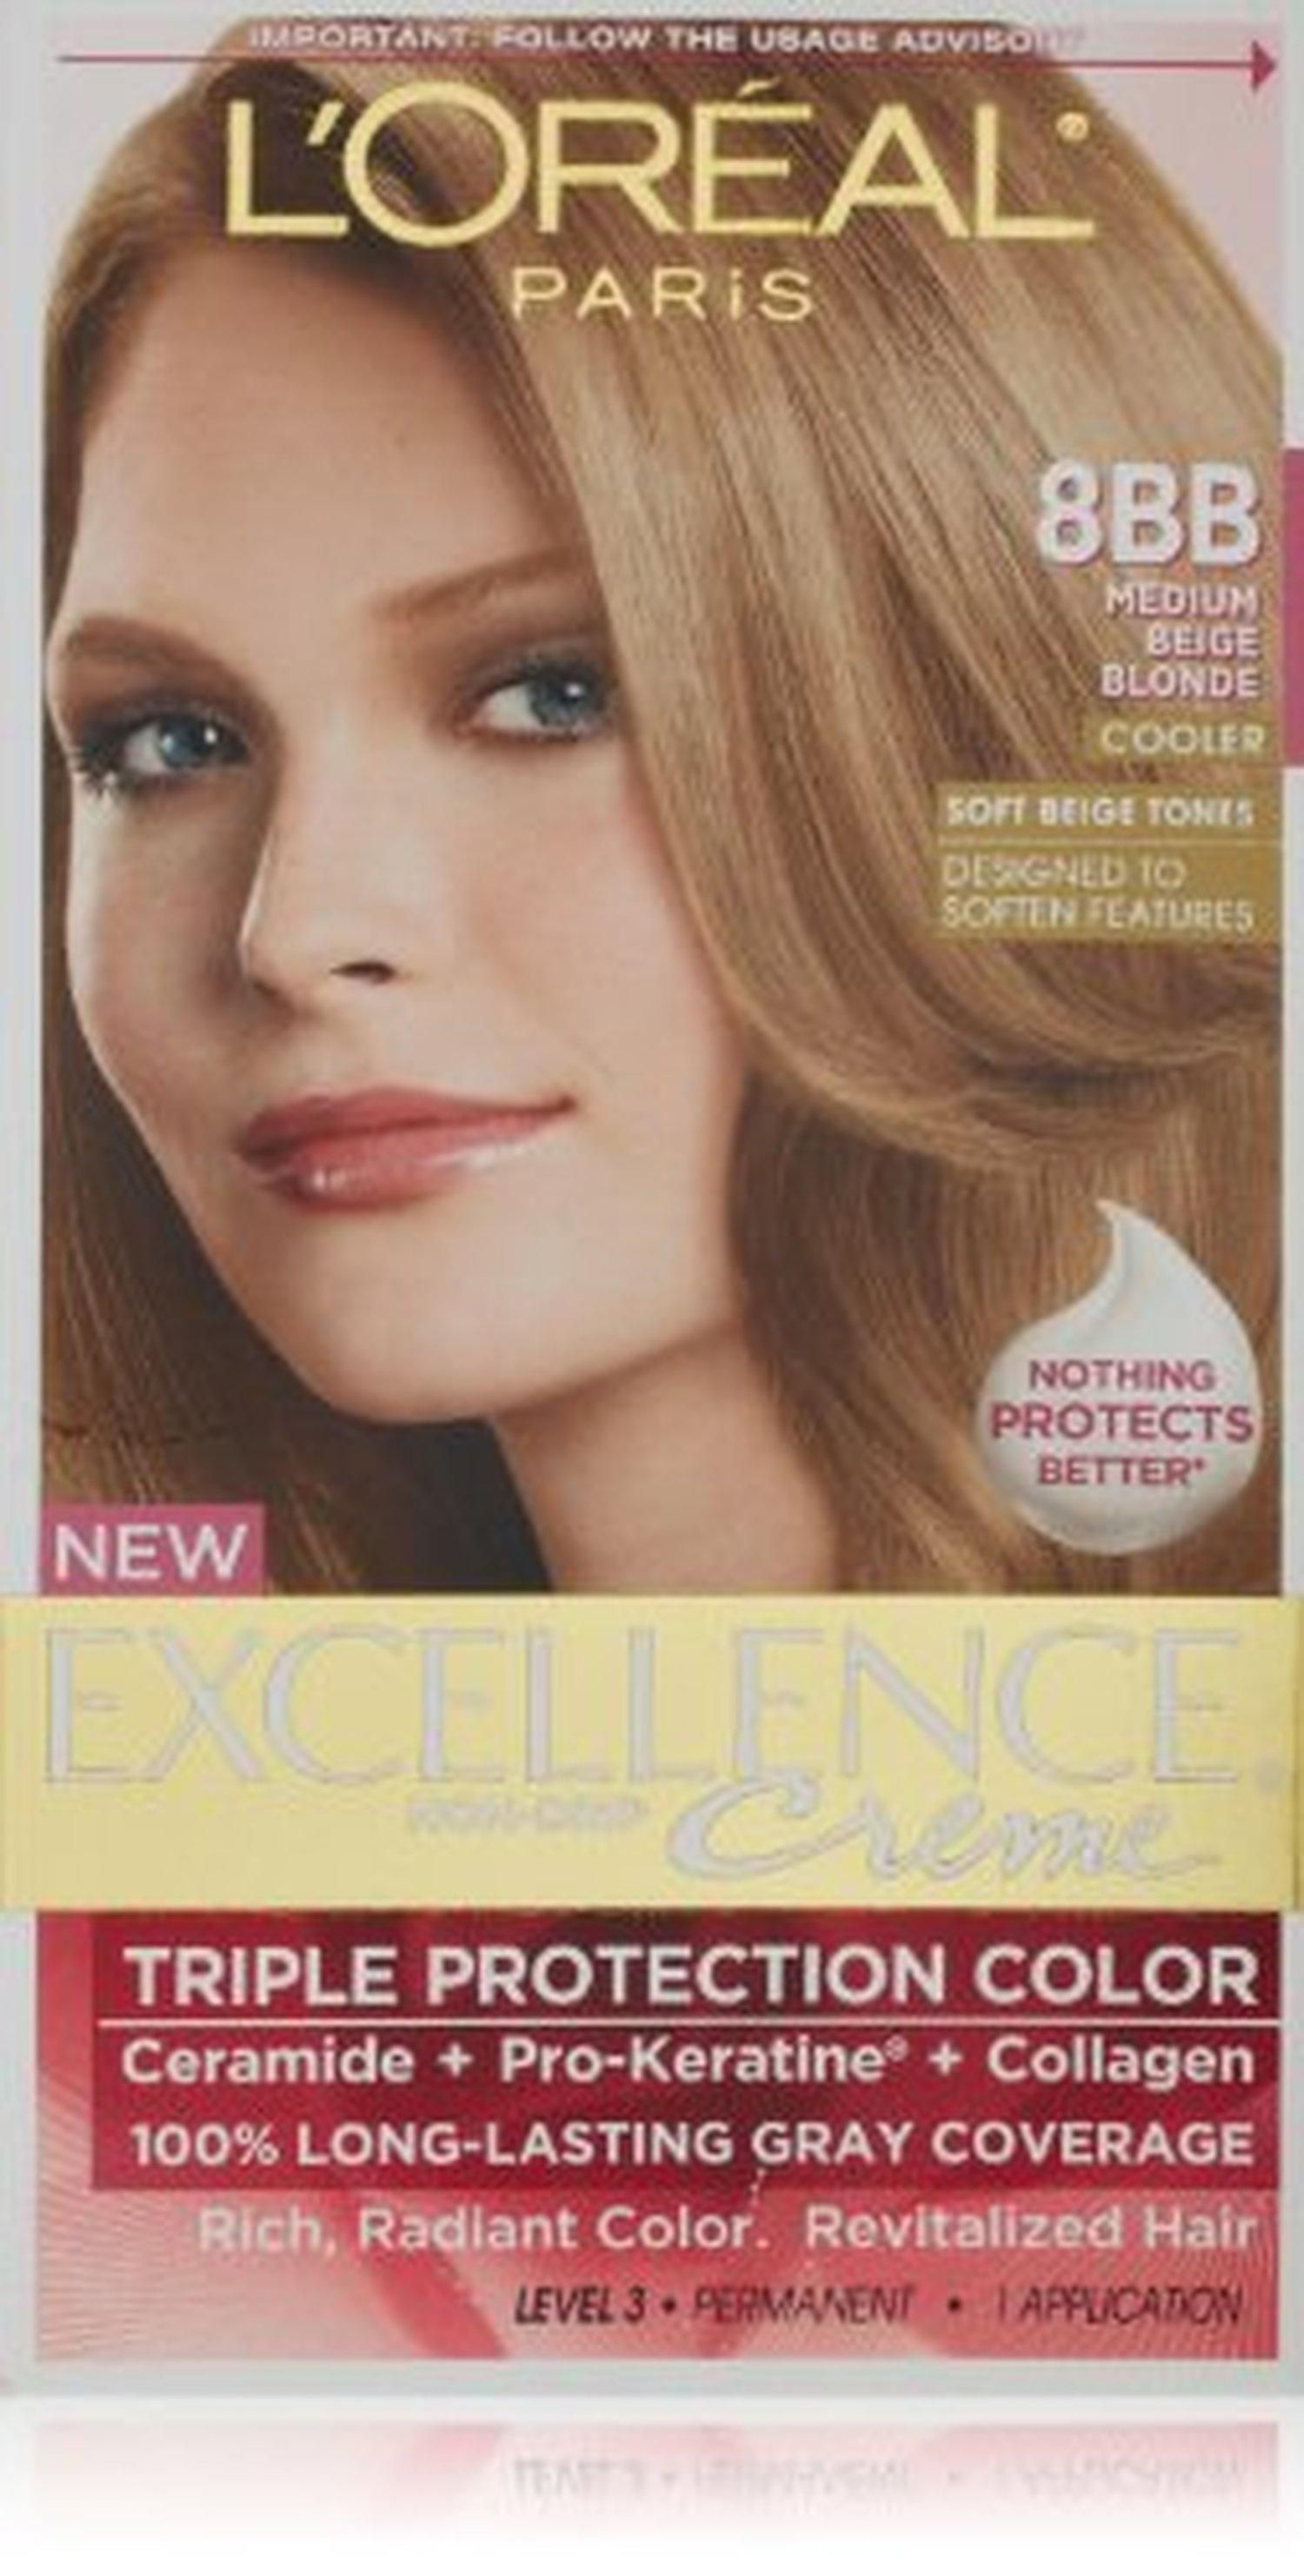 L Oreal Excellence Triple Protection Color Creme Haircolor 8bb Medium Beige Blonde Brought